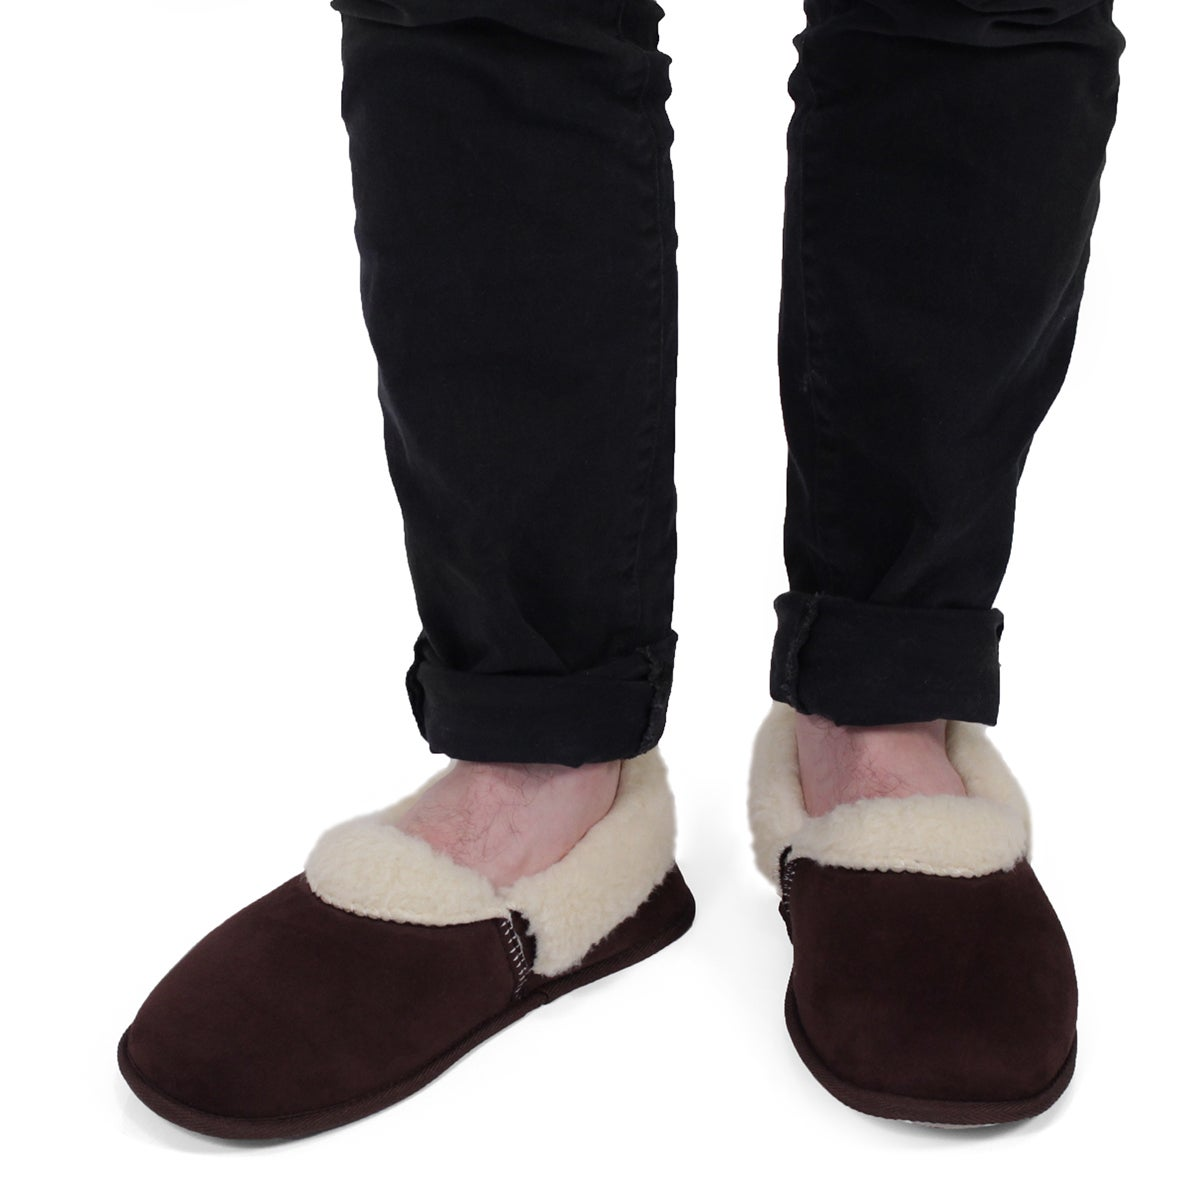 Mns Flapjack rtbr closed back slipper